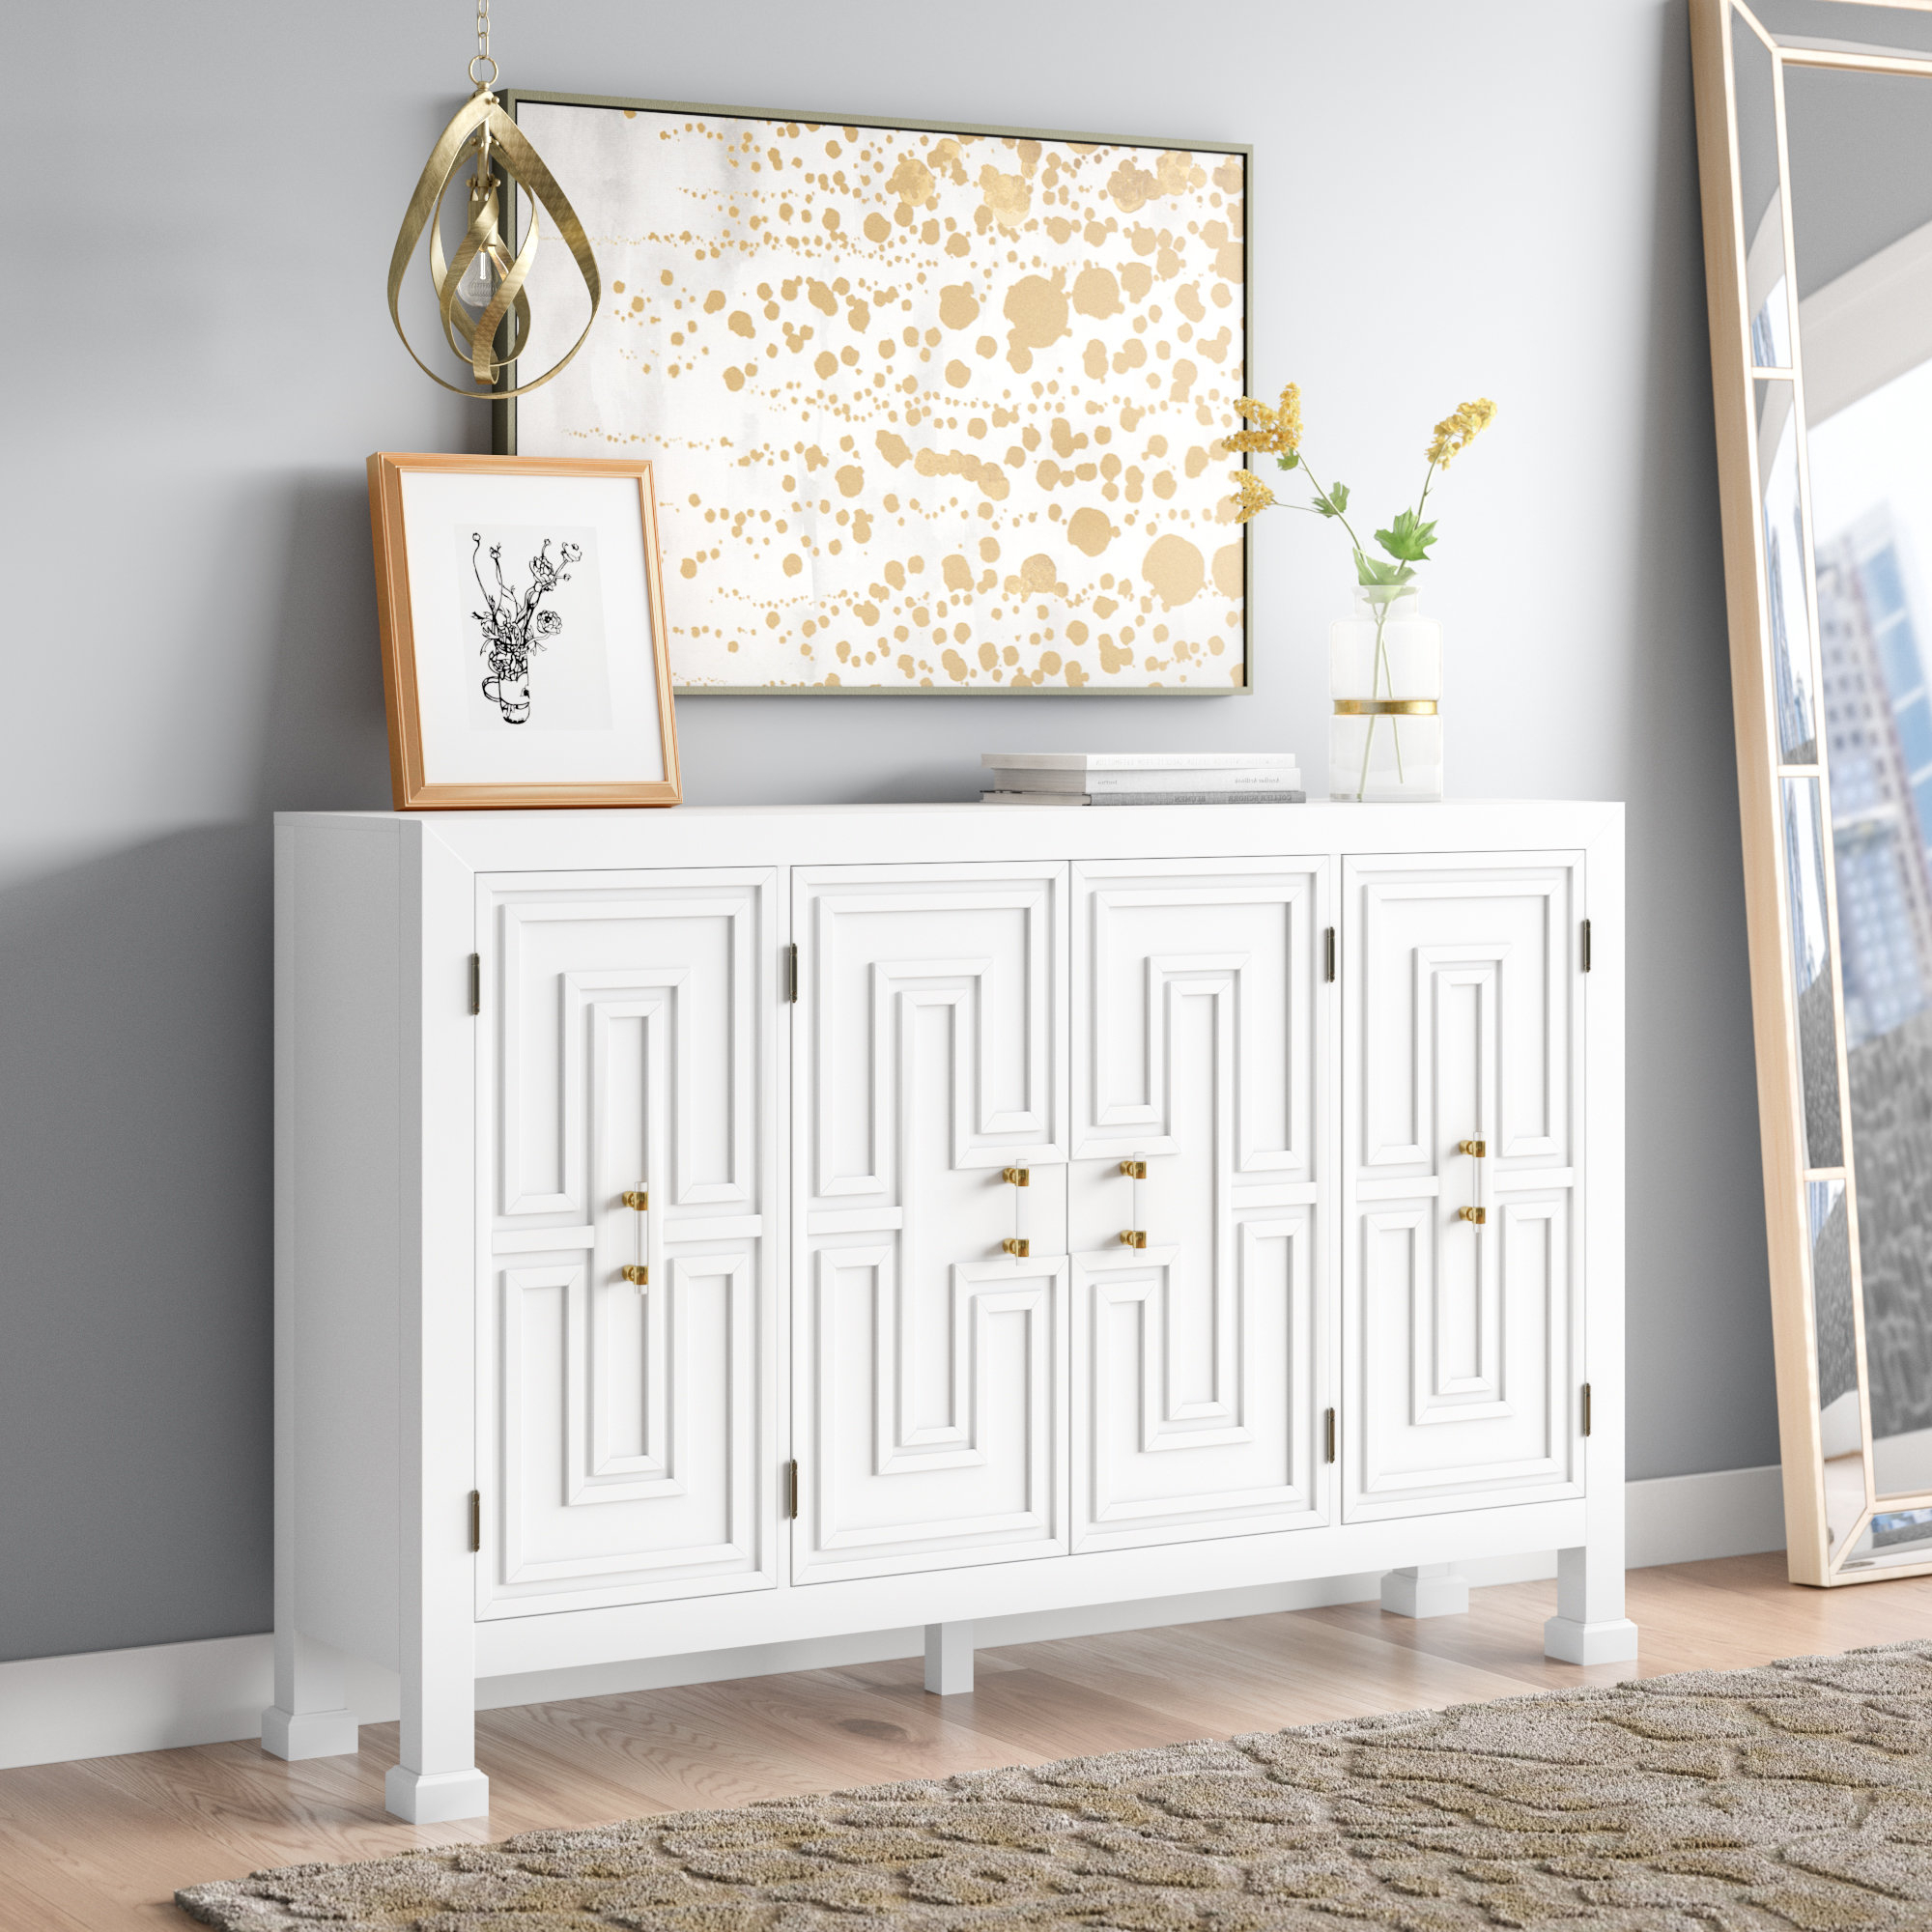 Mercer41 Lainey Credenza & Reviews | Wayfair Throughout Lainey Credenzas (View 11 of 20)